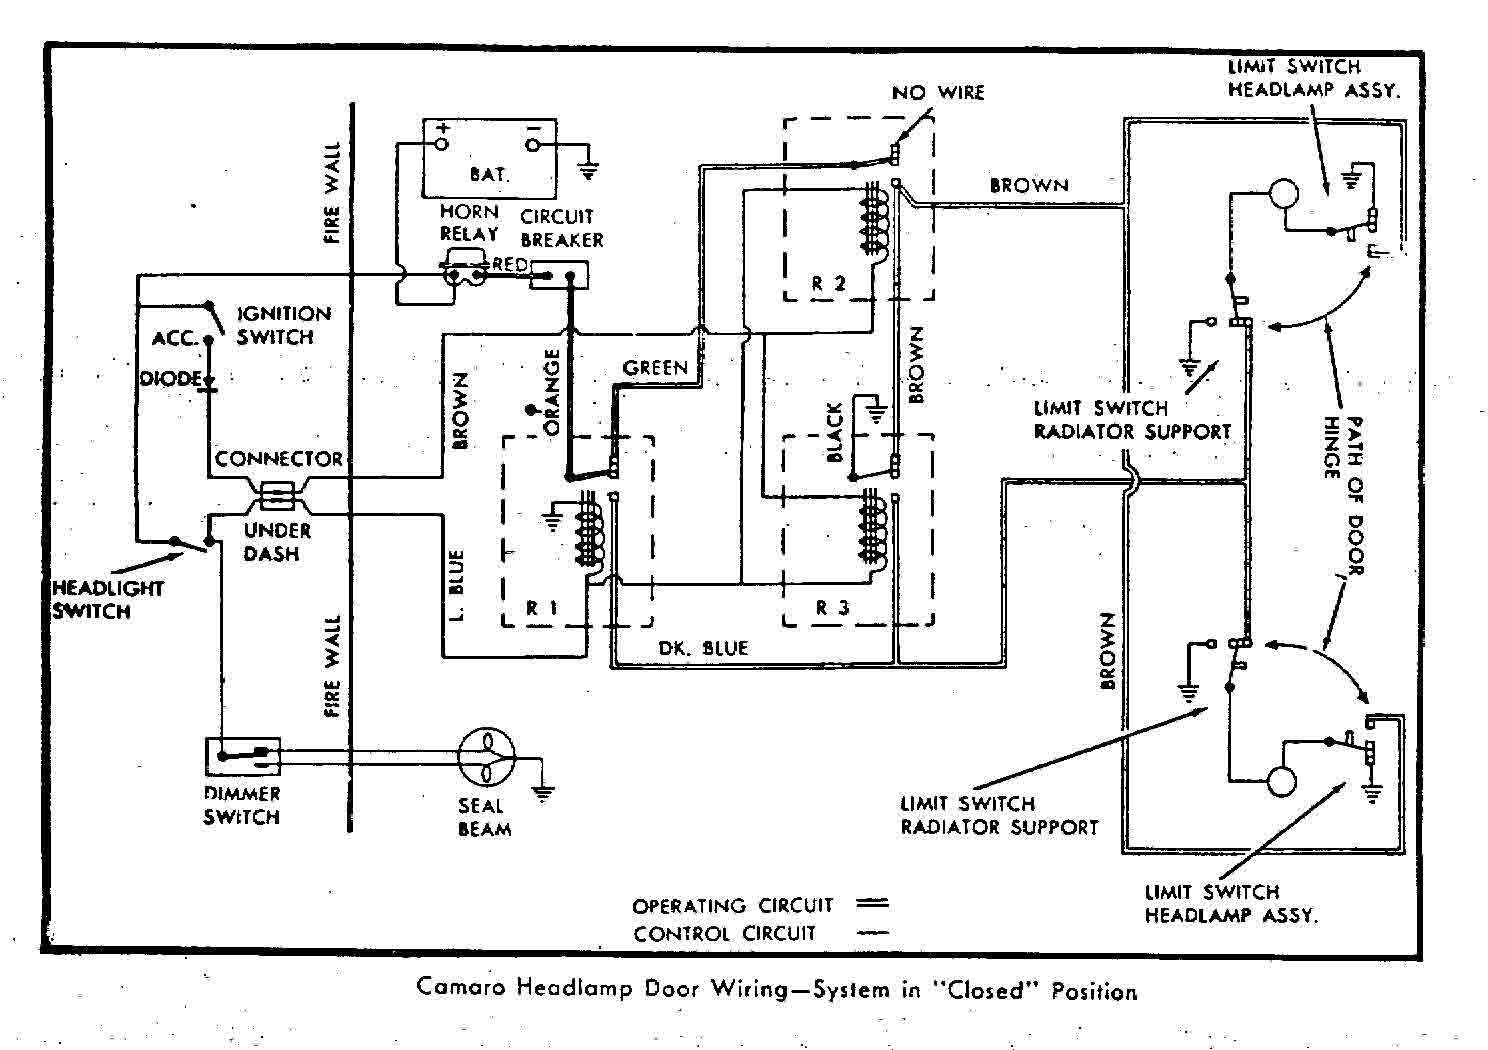 Ford F 250 Headlight Switch Wiring Diagram Free Download ... Headlight Dimmer Relay Wiring Diagram on